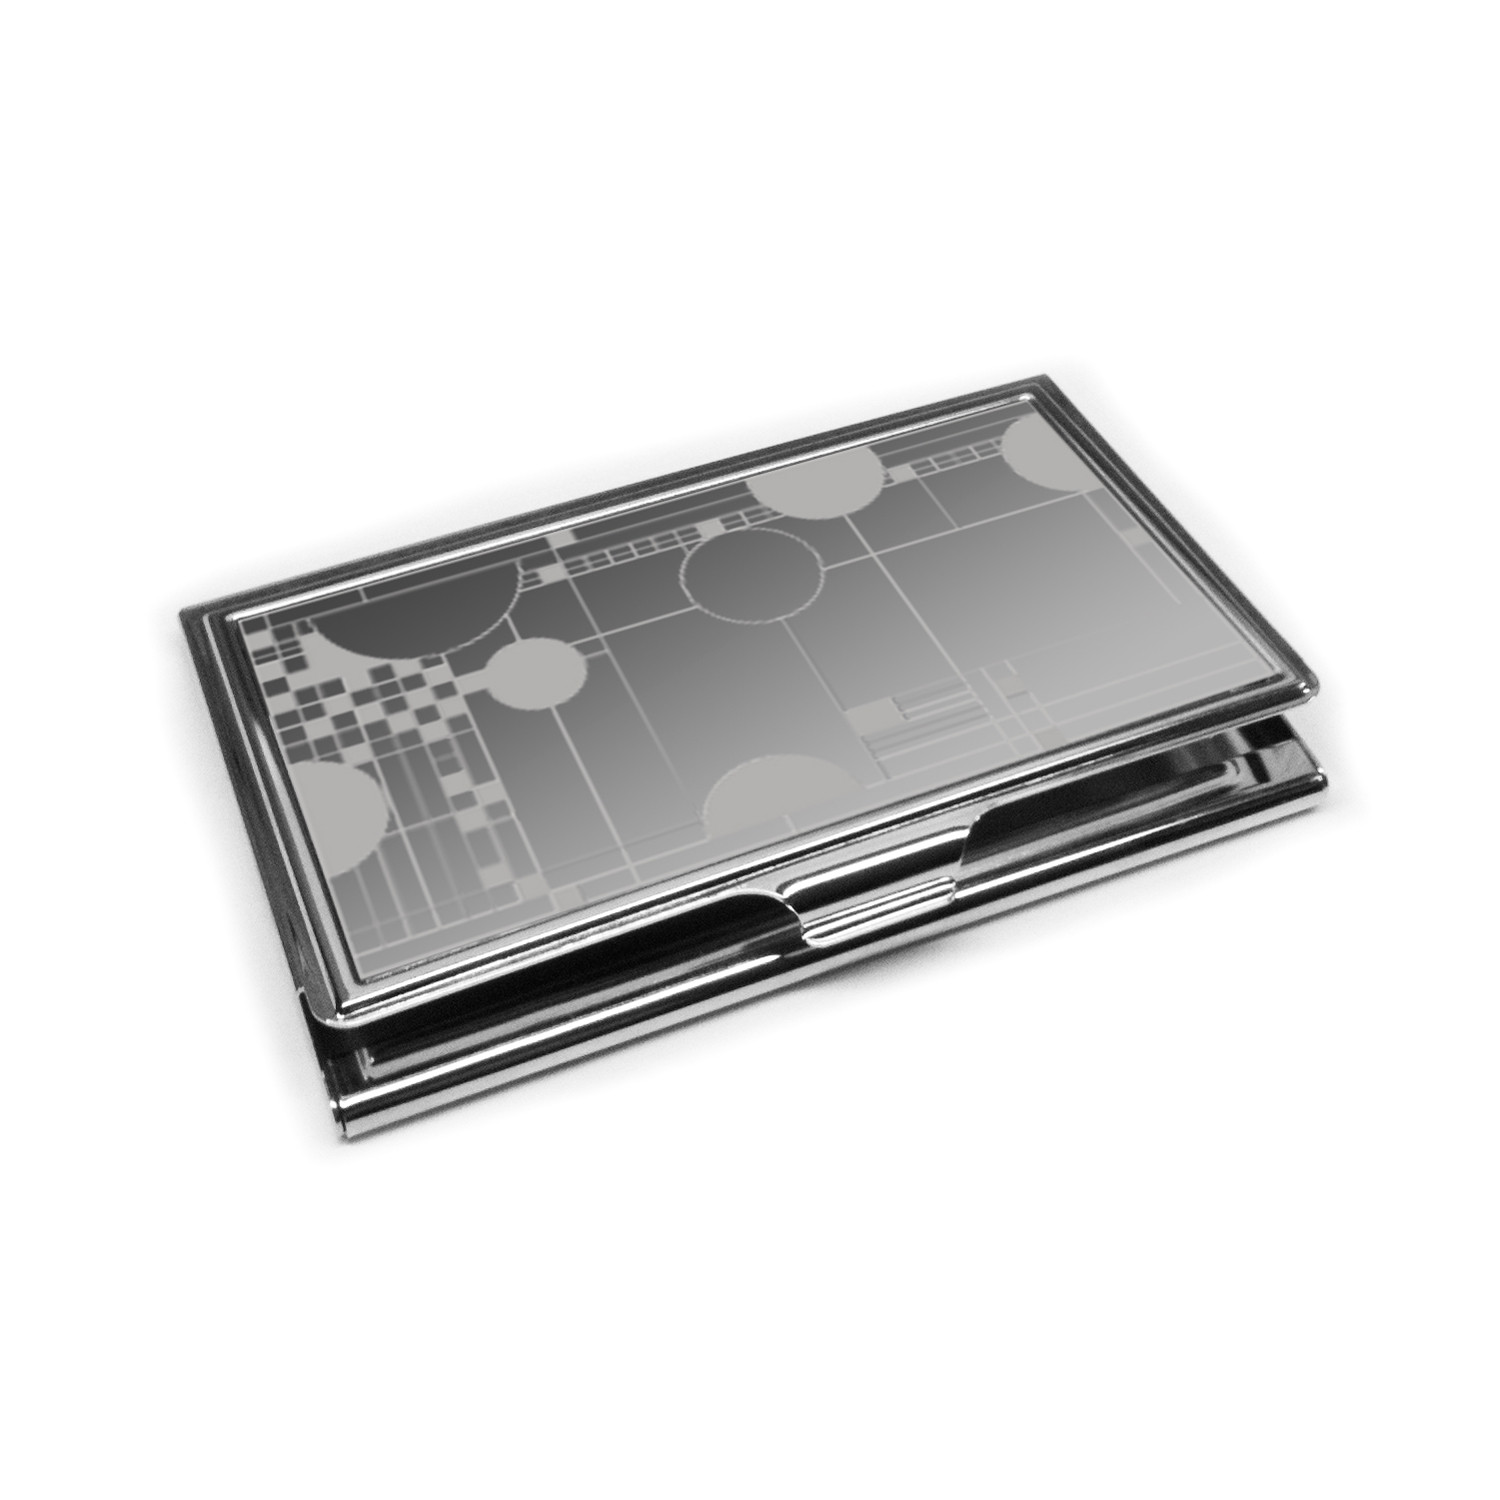 Avery Coonley Playhouse Card Case - Frank Lloyd Wright Cases - Touch ...